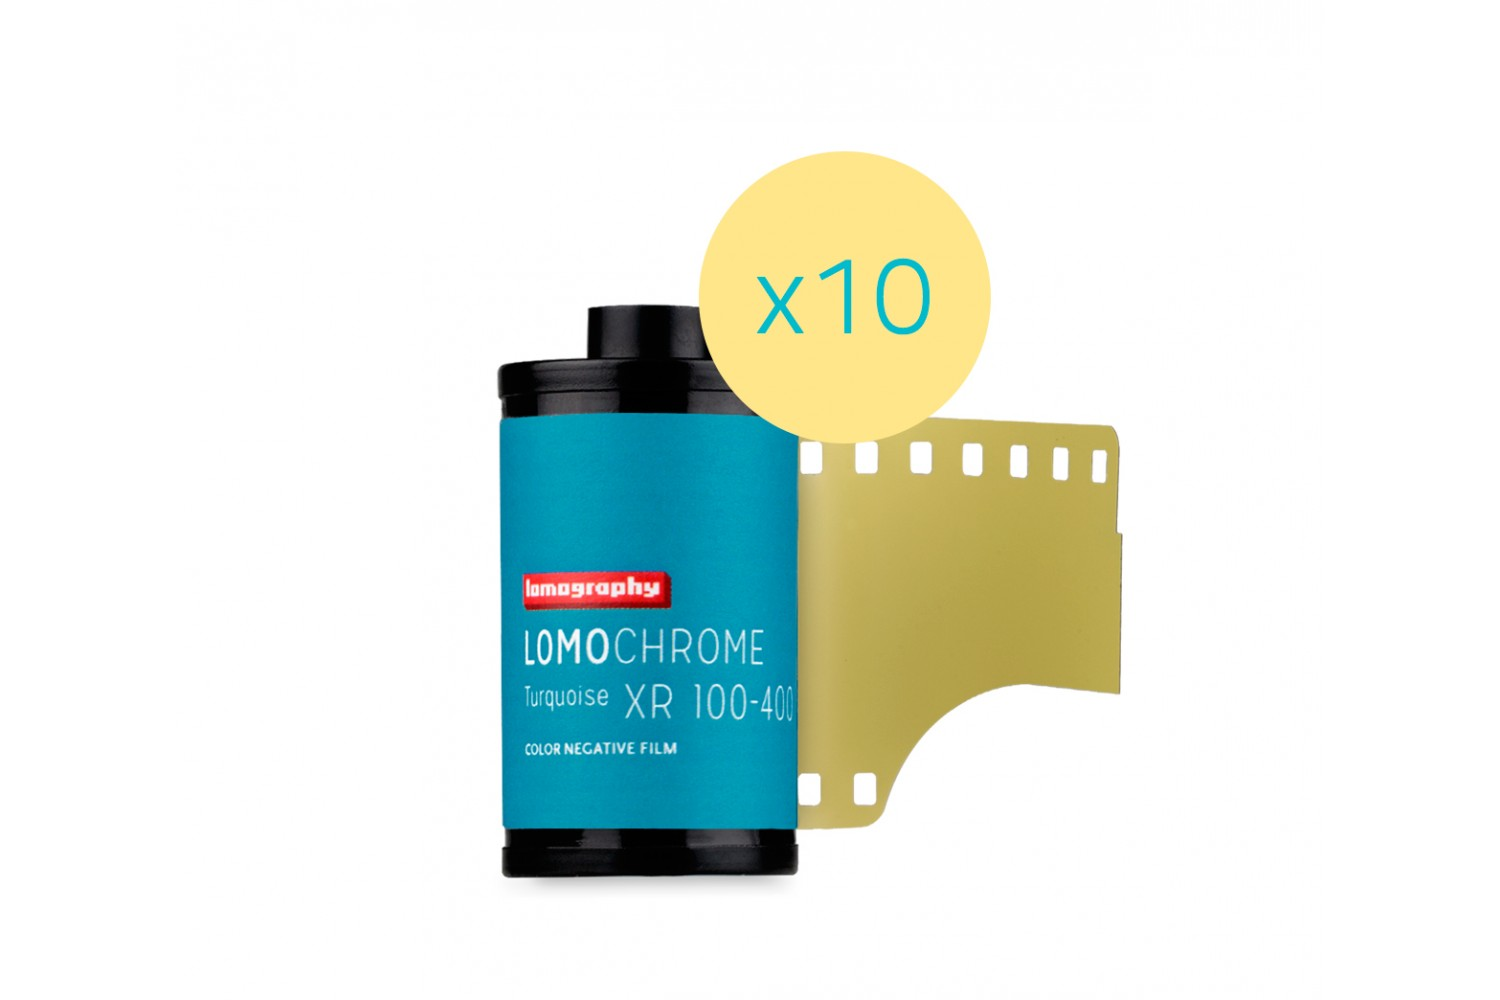 Lomography LomoChrome Turquoise XR 100-400 35mm Pack of 10